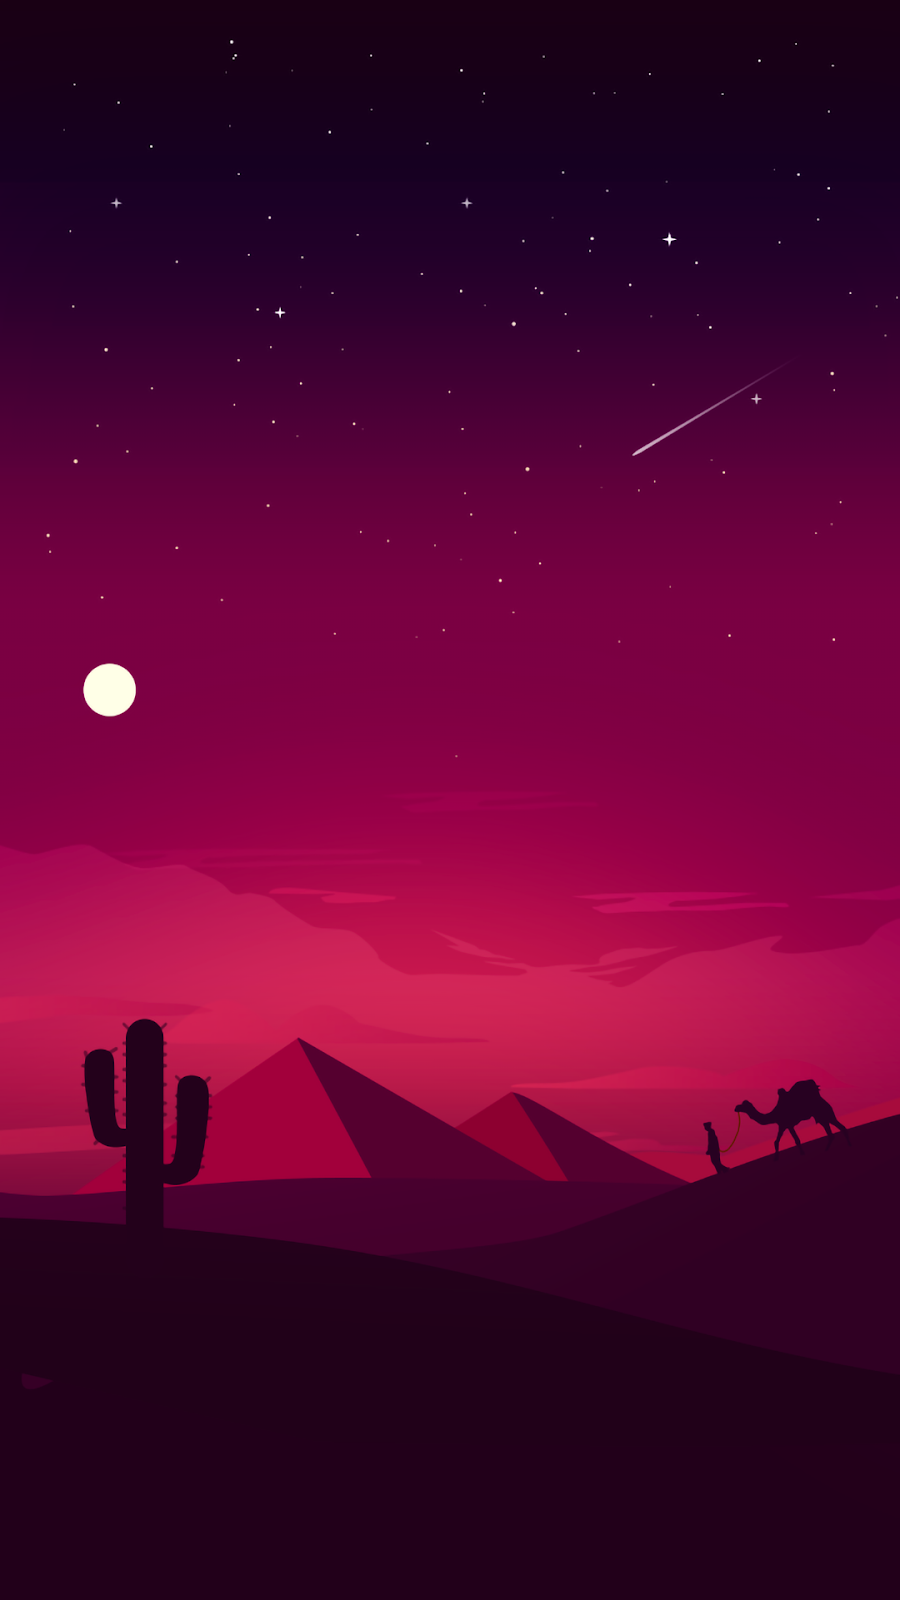 desert minimalist red purple vertical wallpaper in 1080p for mobile phone